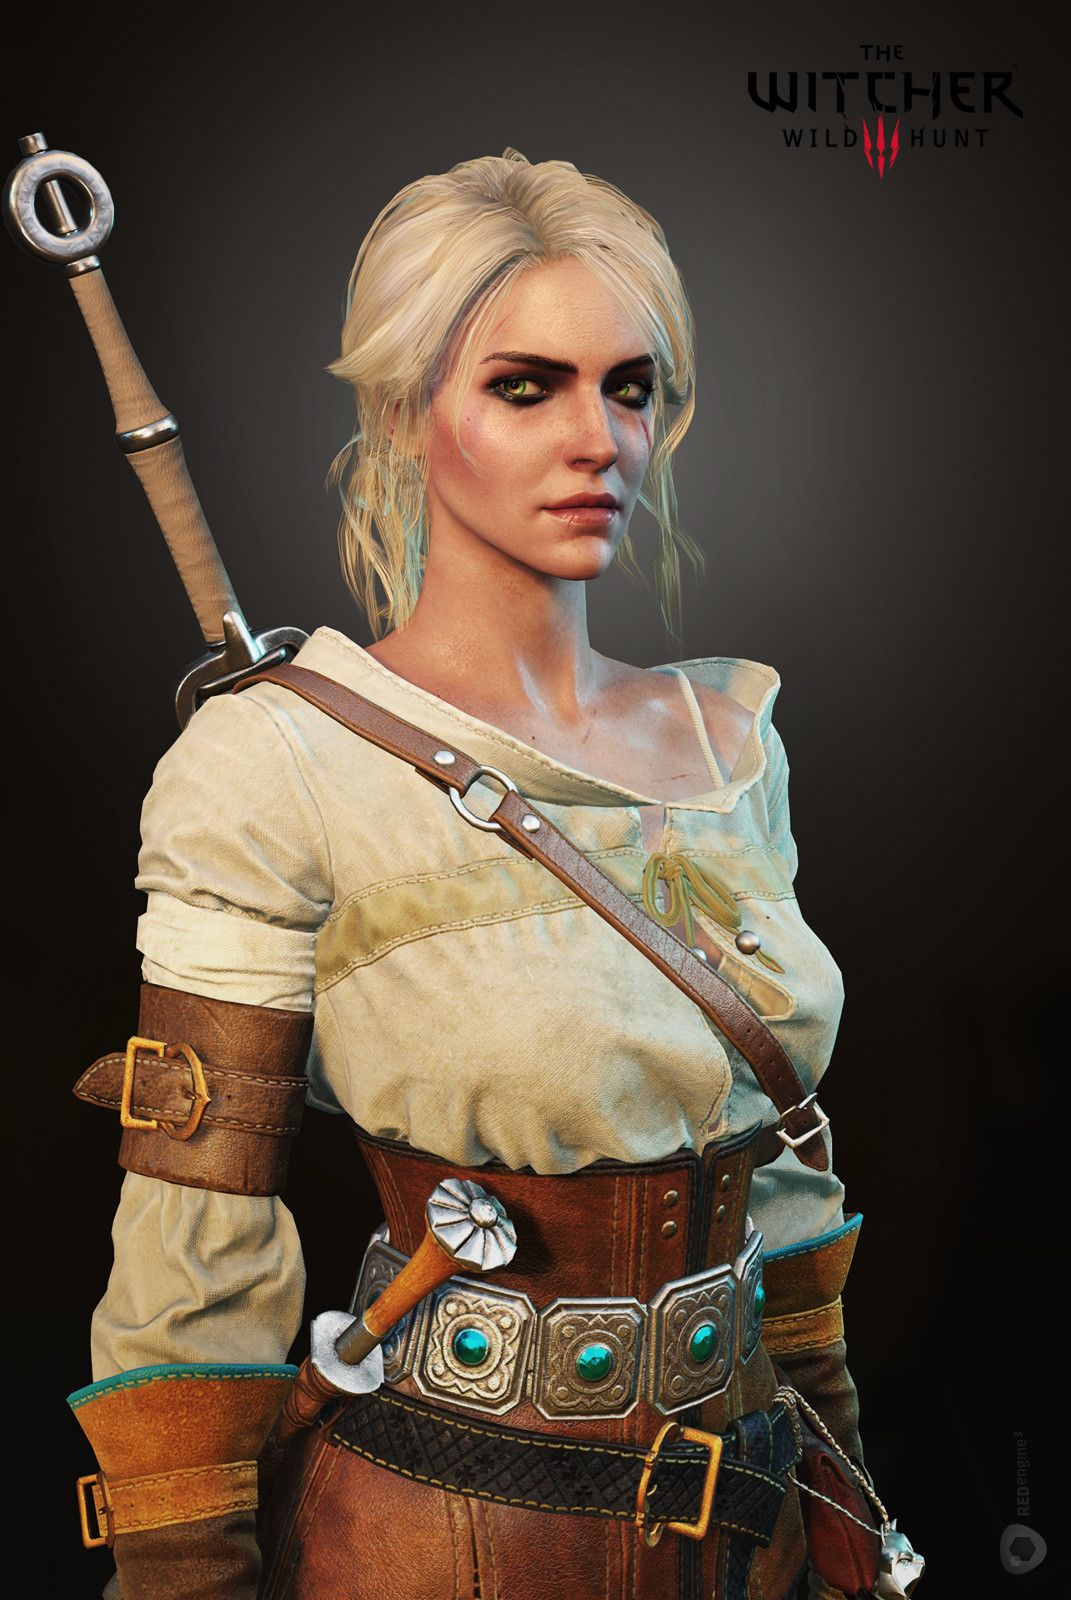 Ciri Face I Did For The Witcher 3 Lowpoly Hair Was Created By Bill Daly